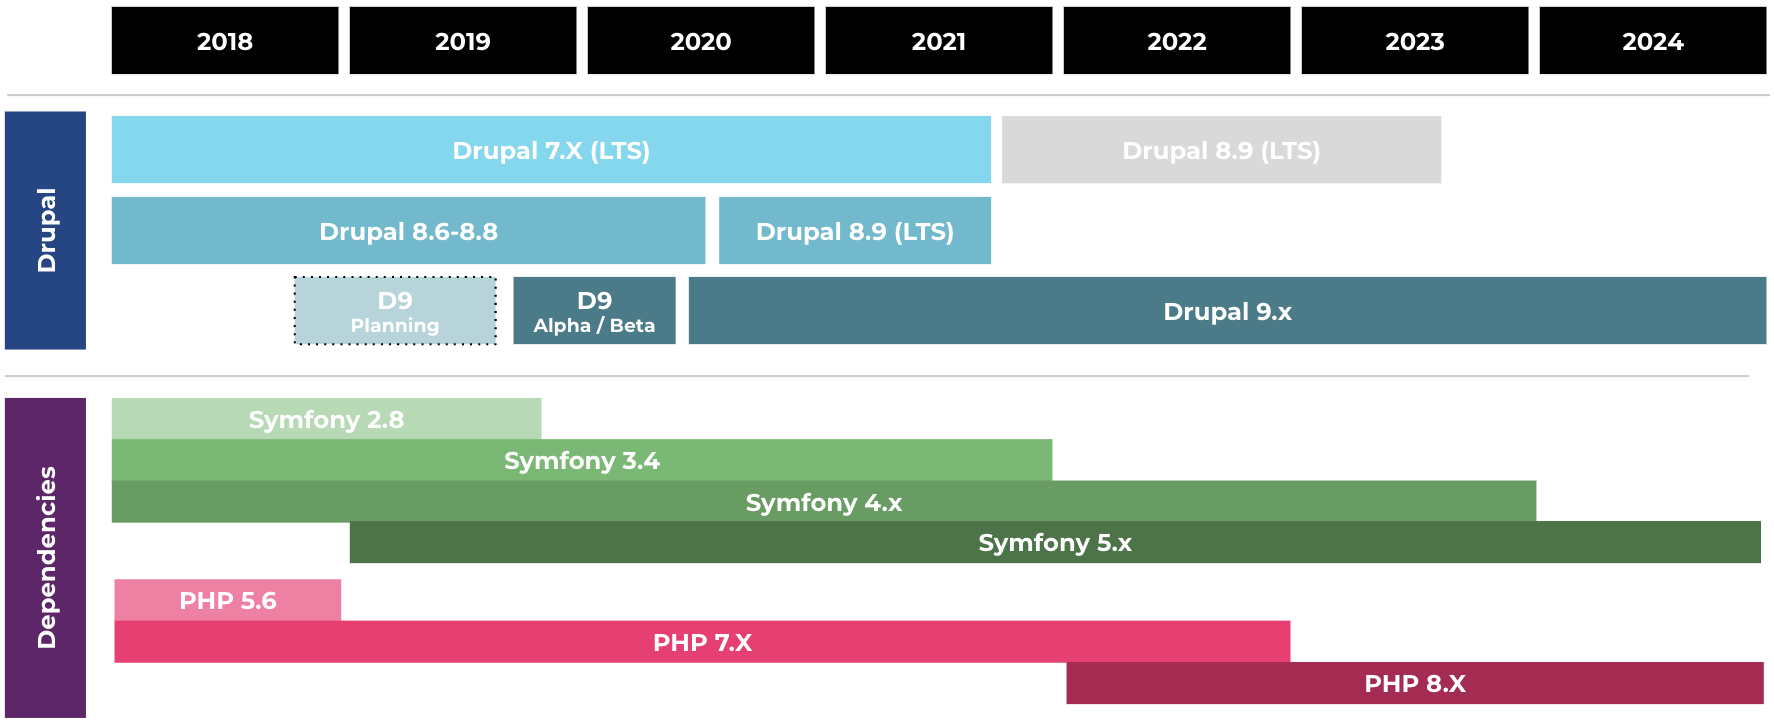 Image of Drupal 9 upgrade timeline compared to Symfony timeline